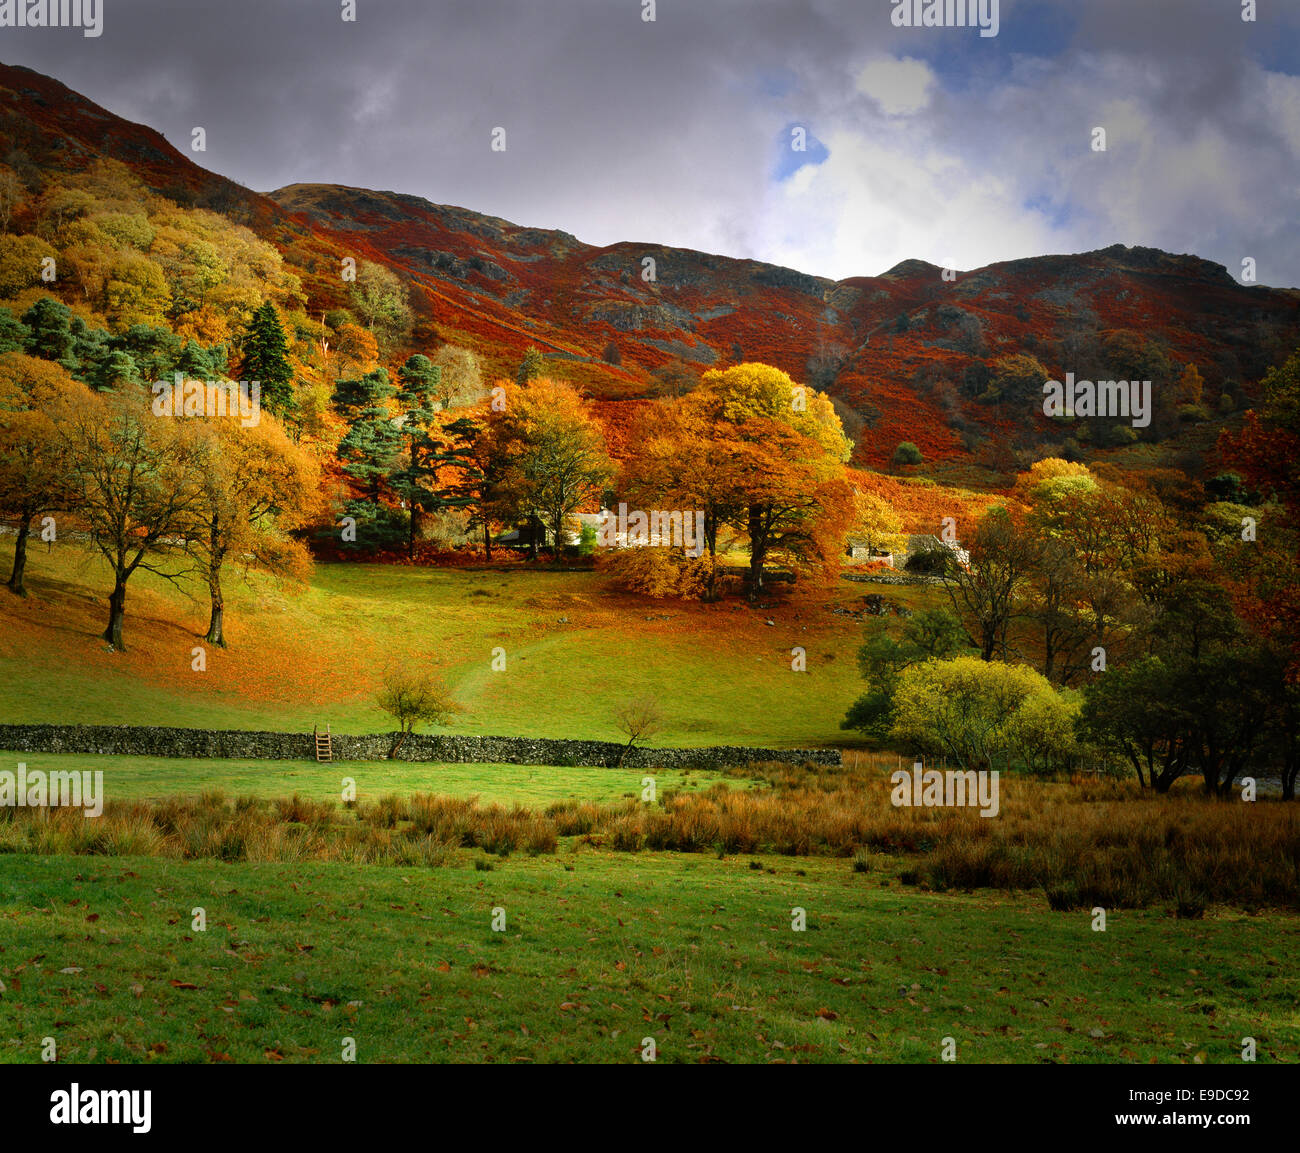 England: Autumn near Grasmere, Lake District, Cumbria - Stock Image